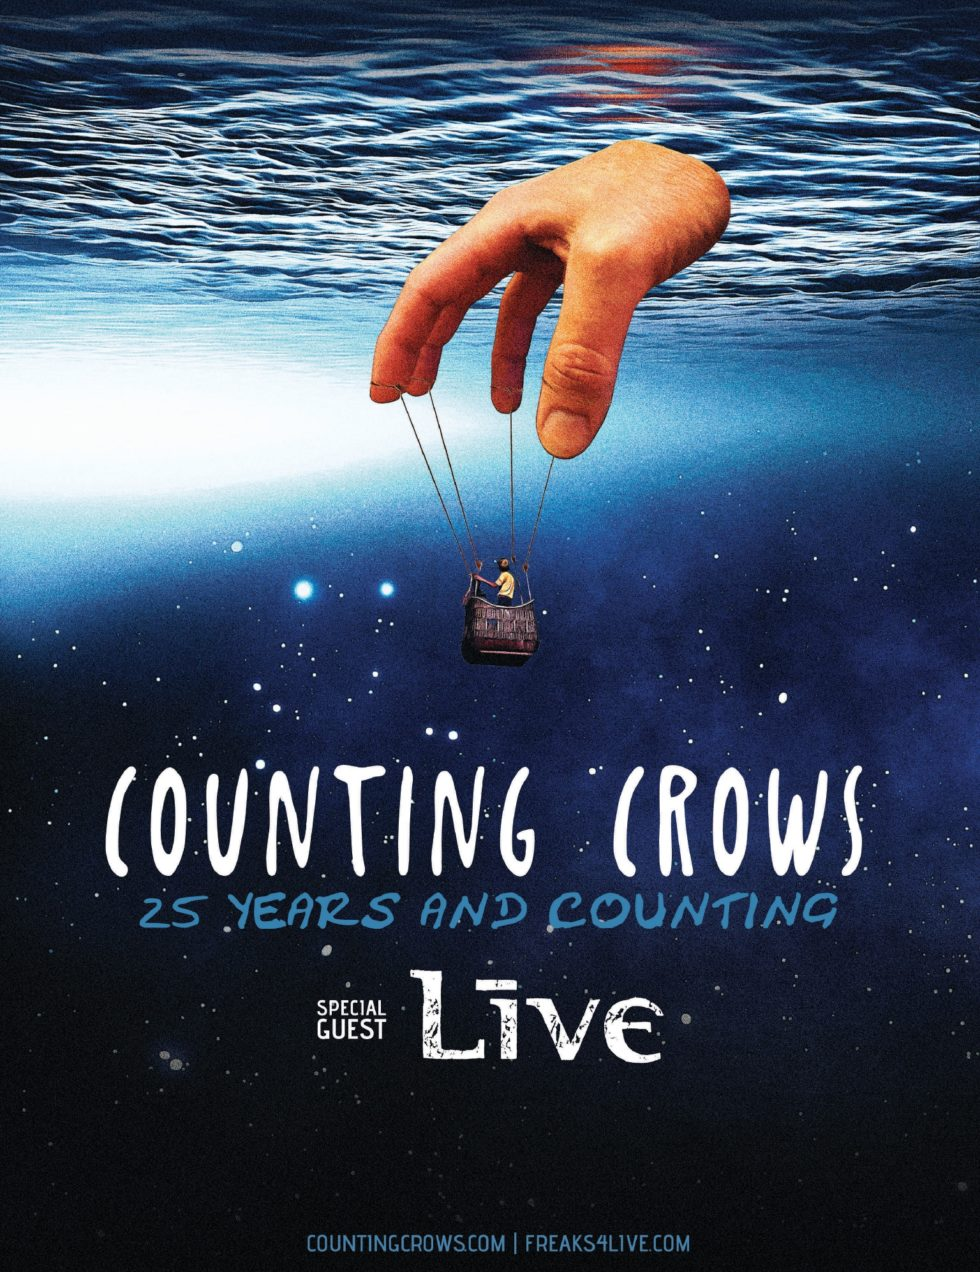 counting-crows-w-live-admat-980x1272.jpg